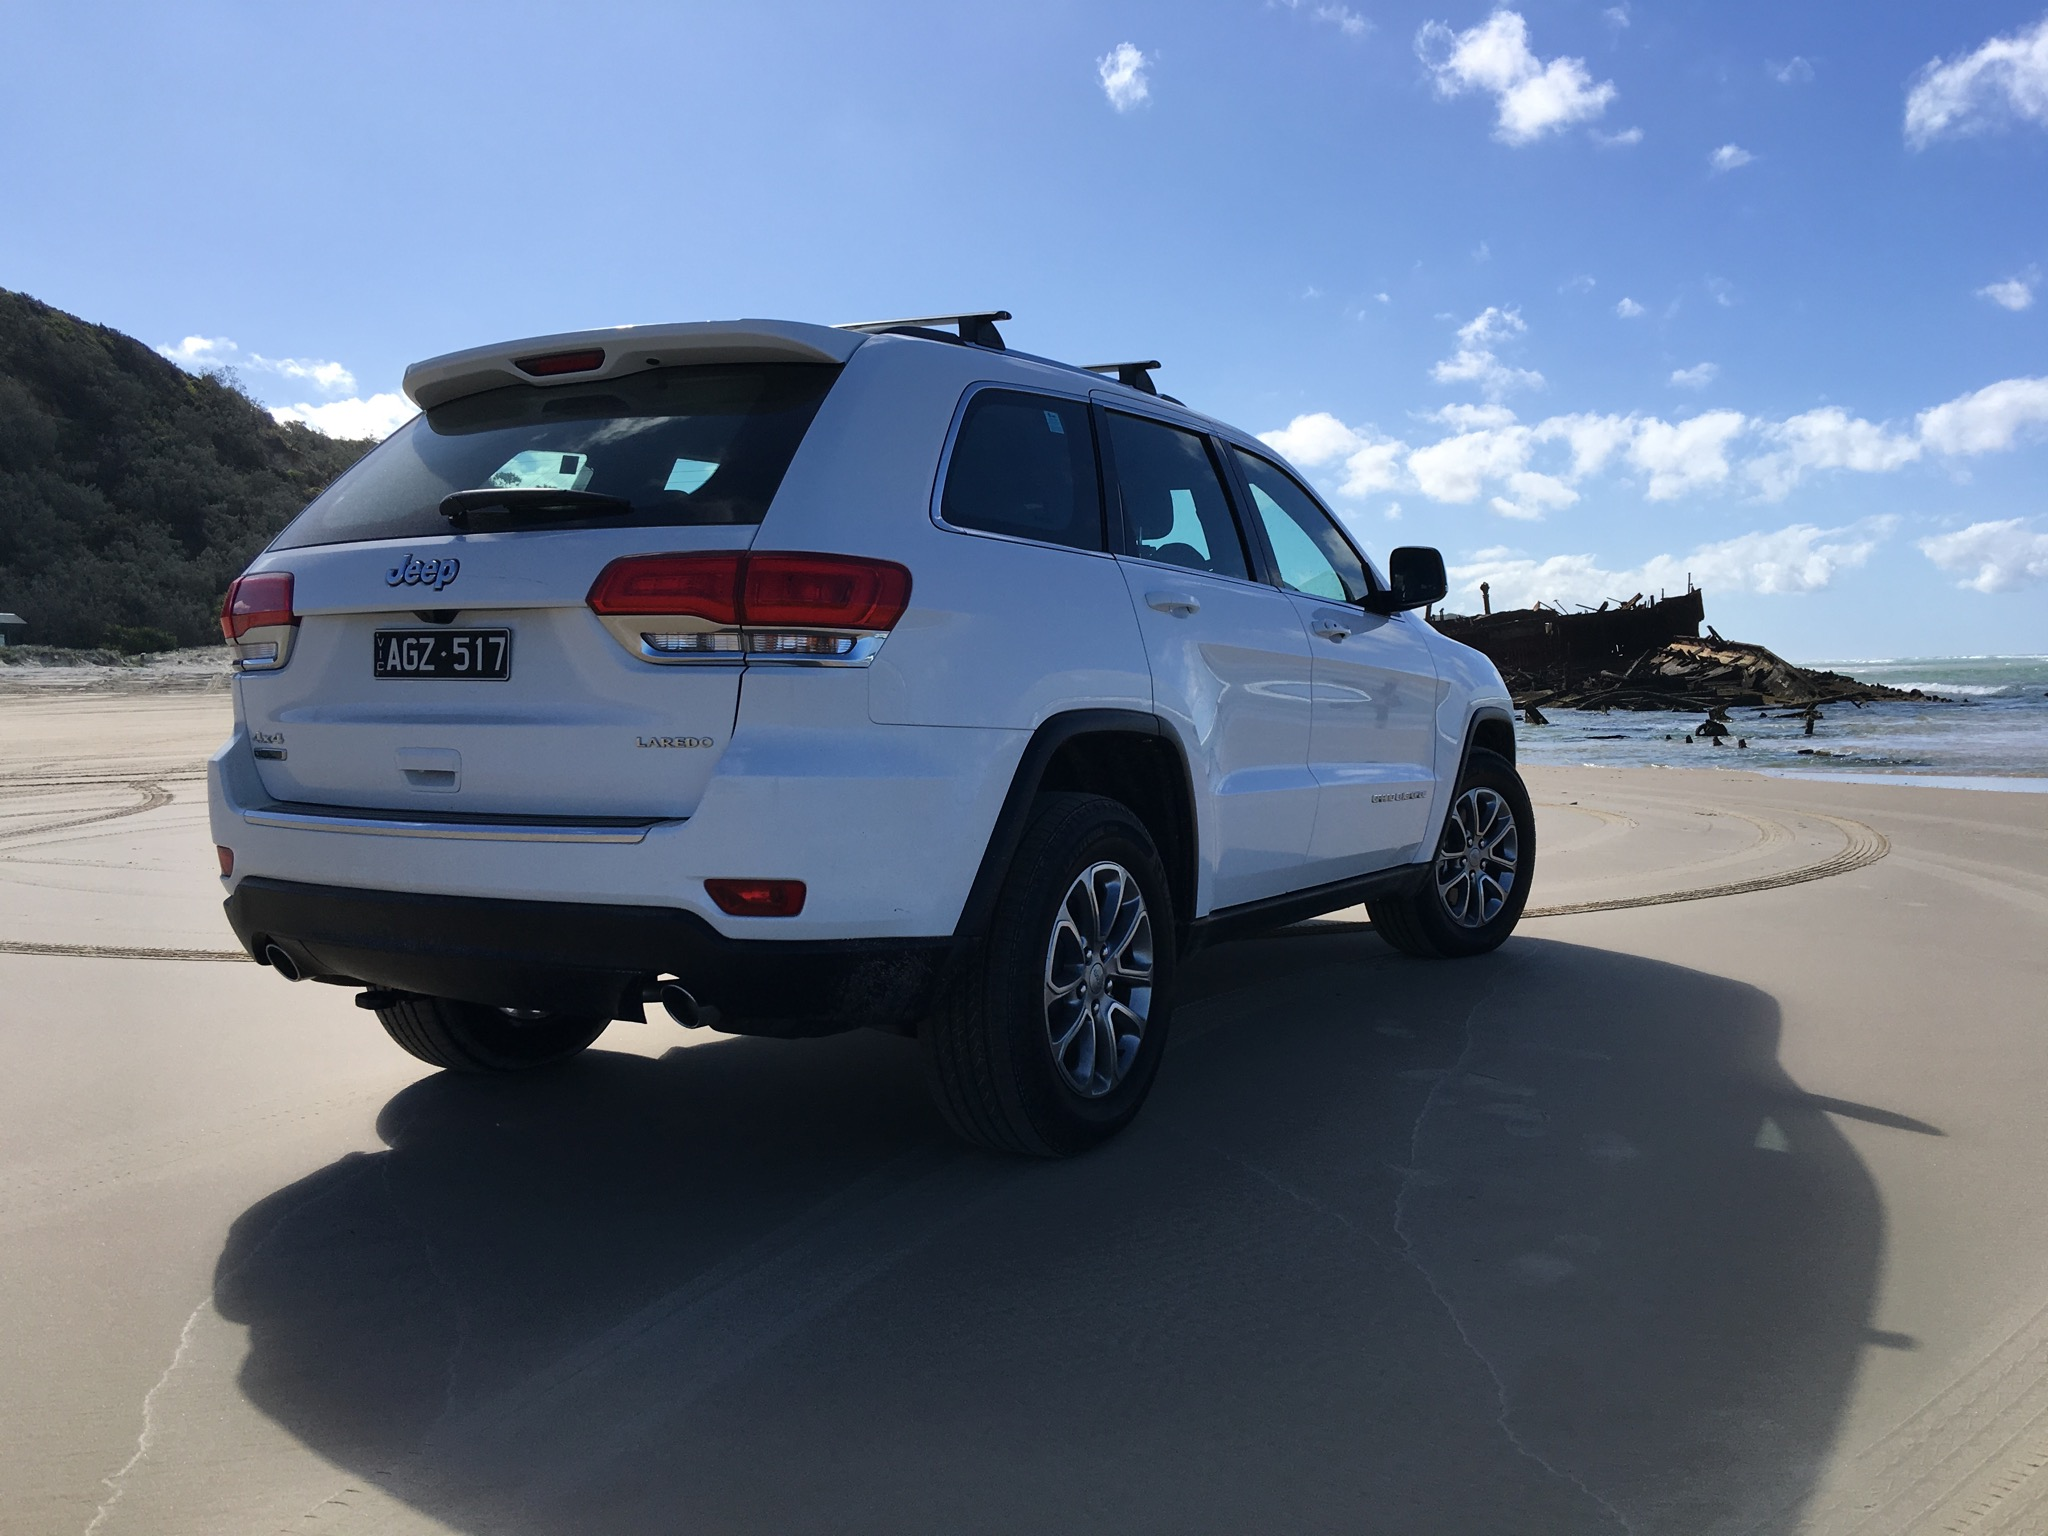 2016 jeep grand cherokee laredo review fraser island weekender. Cars Review. Best American Auto & Cars Review